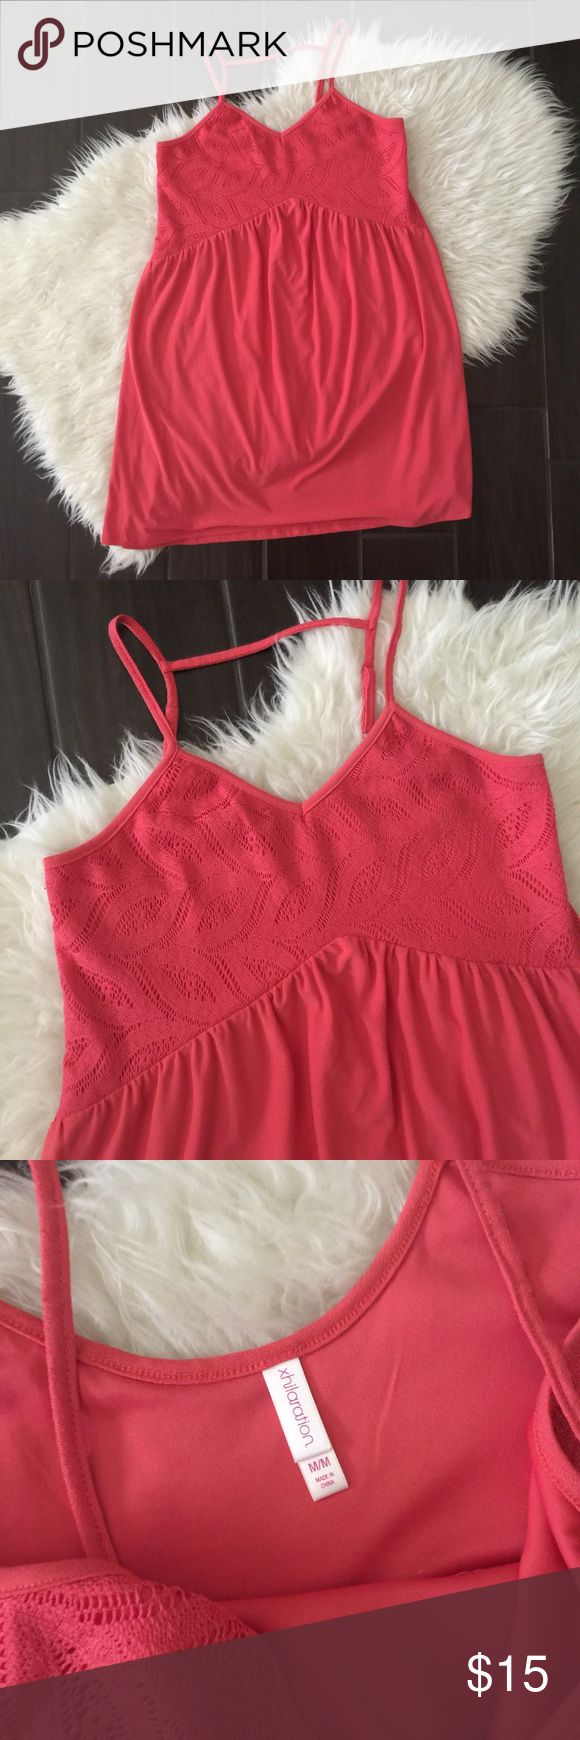 Coral lace dress. Coral dress. Lace coral dress Excellent used condition, no holes or stains. Please review photos for details and measurements. No trades Xhilaration Dresses